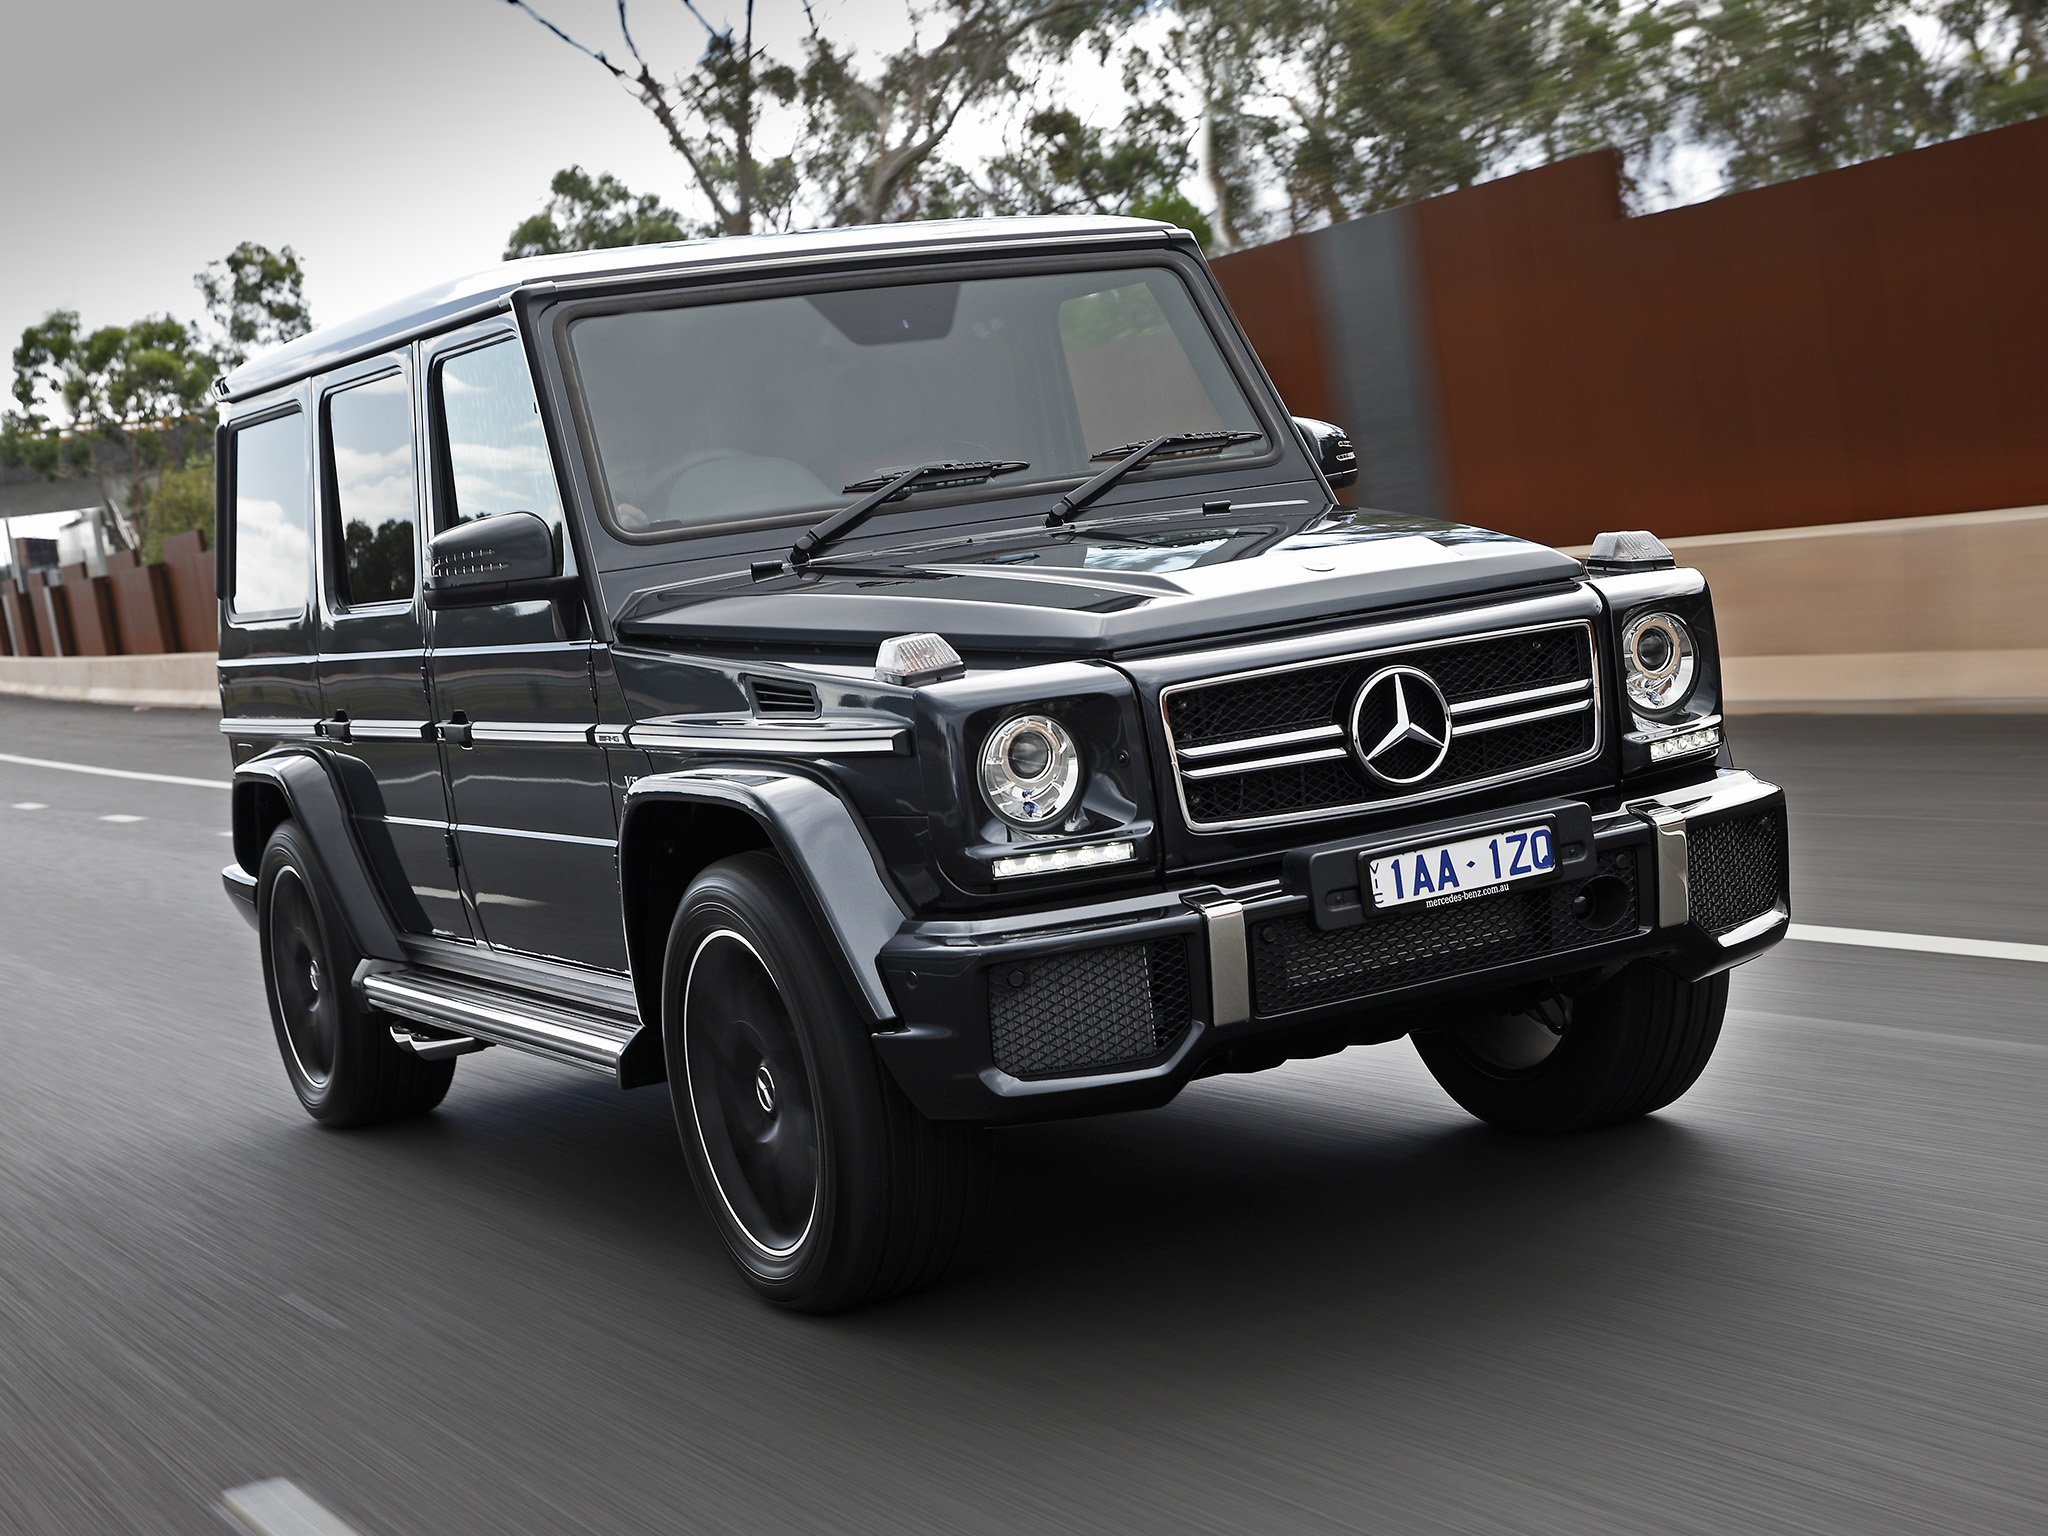 mercedes benz g63 amg au spec w463 2012 cars 4x4 4wd wallpaper 2048x1536 712447 wallpaperup. Black Bedroom Furniture Sets. Home Design Ideas